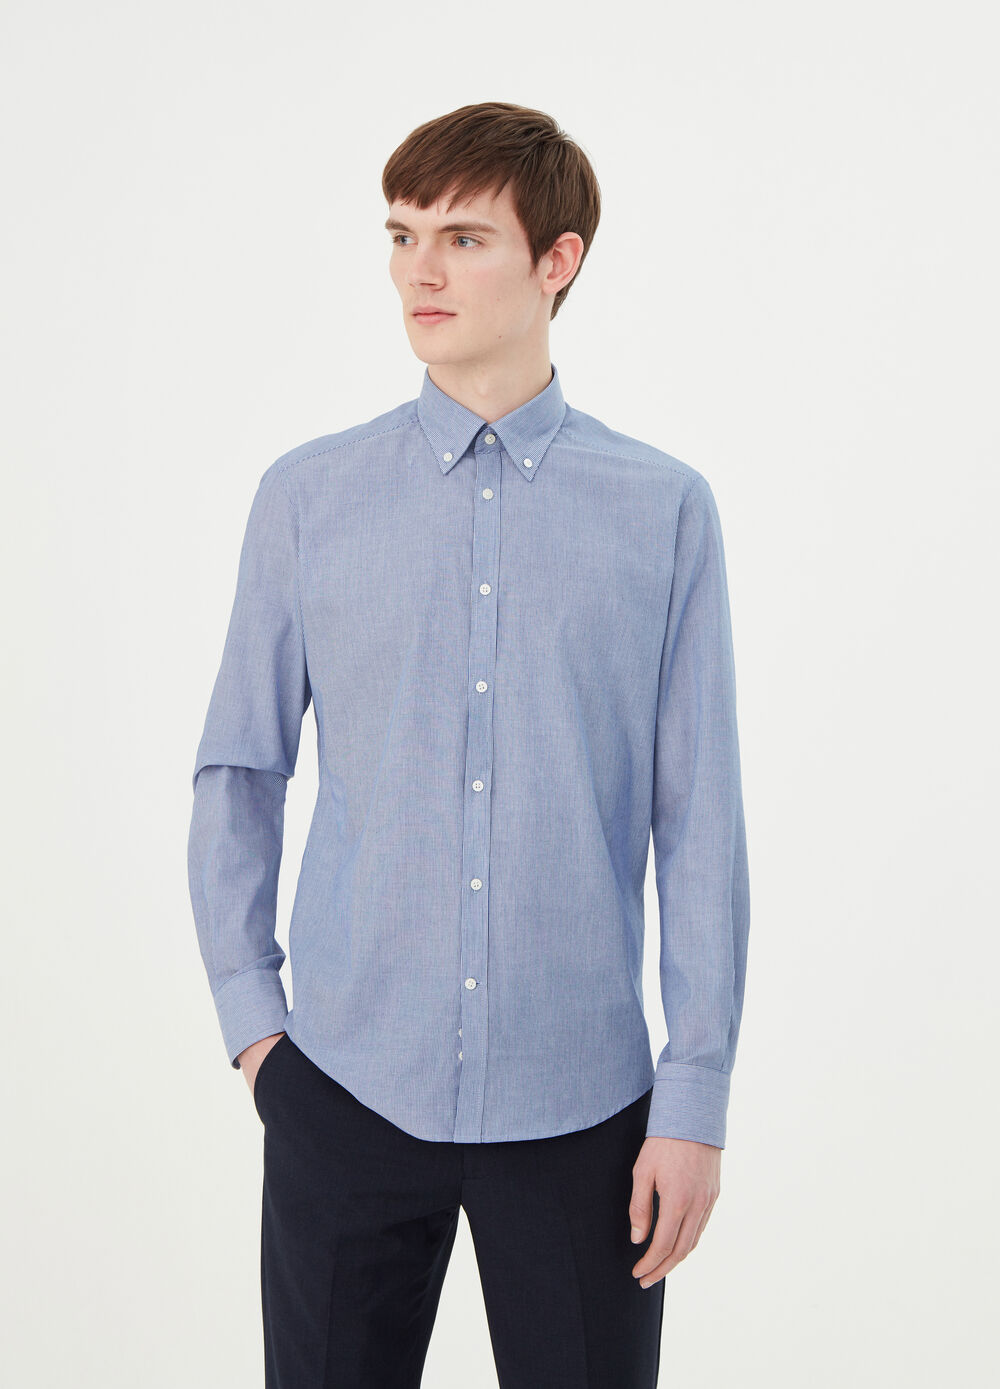 Slim-fit shirt with button-down collar